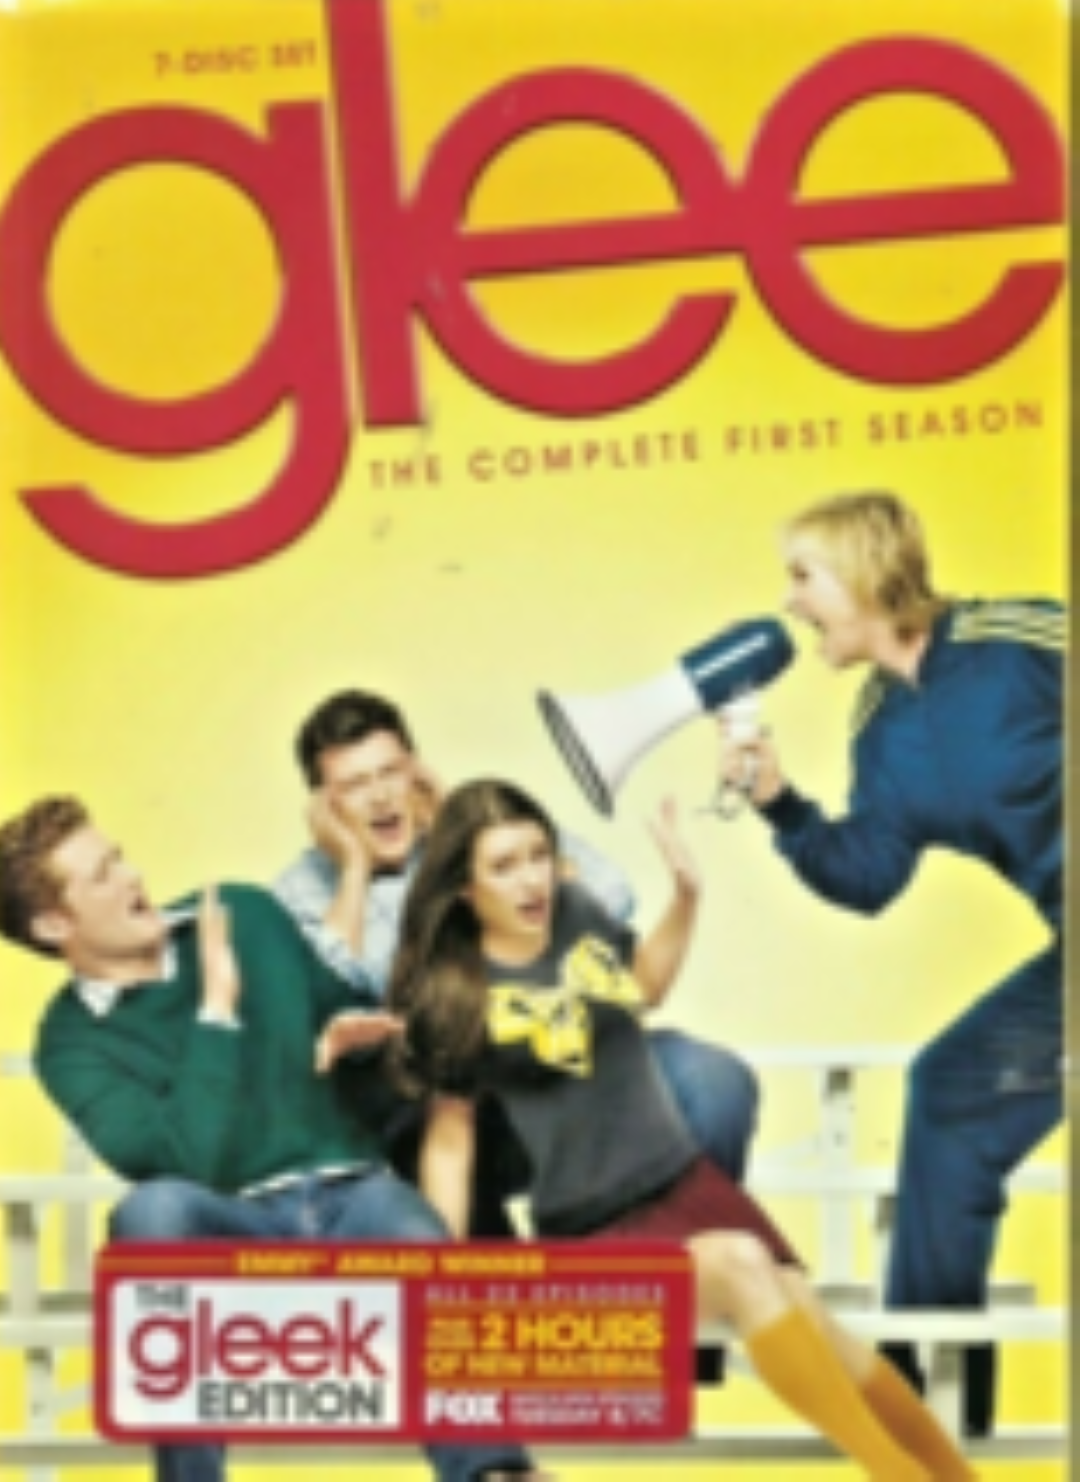 Glee The Complete First Season : The Gleek Edition Dvd